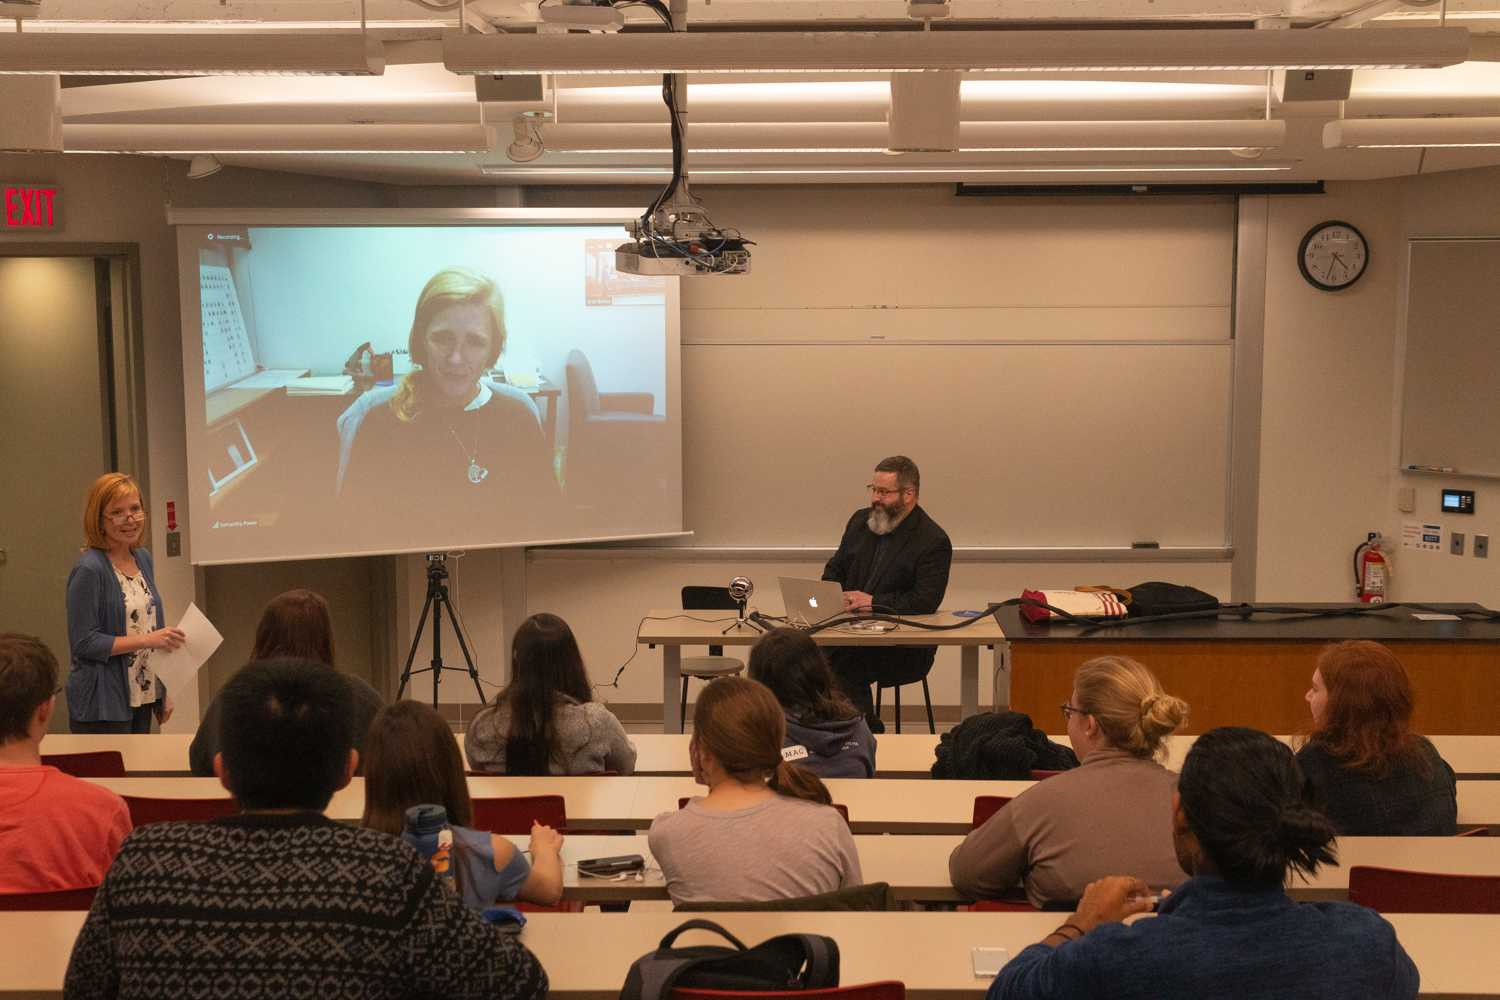 Former United Nations Ambassador Samantha Power discusses her work with students via Skype. Photo by Long Nguyen '21.